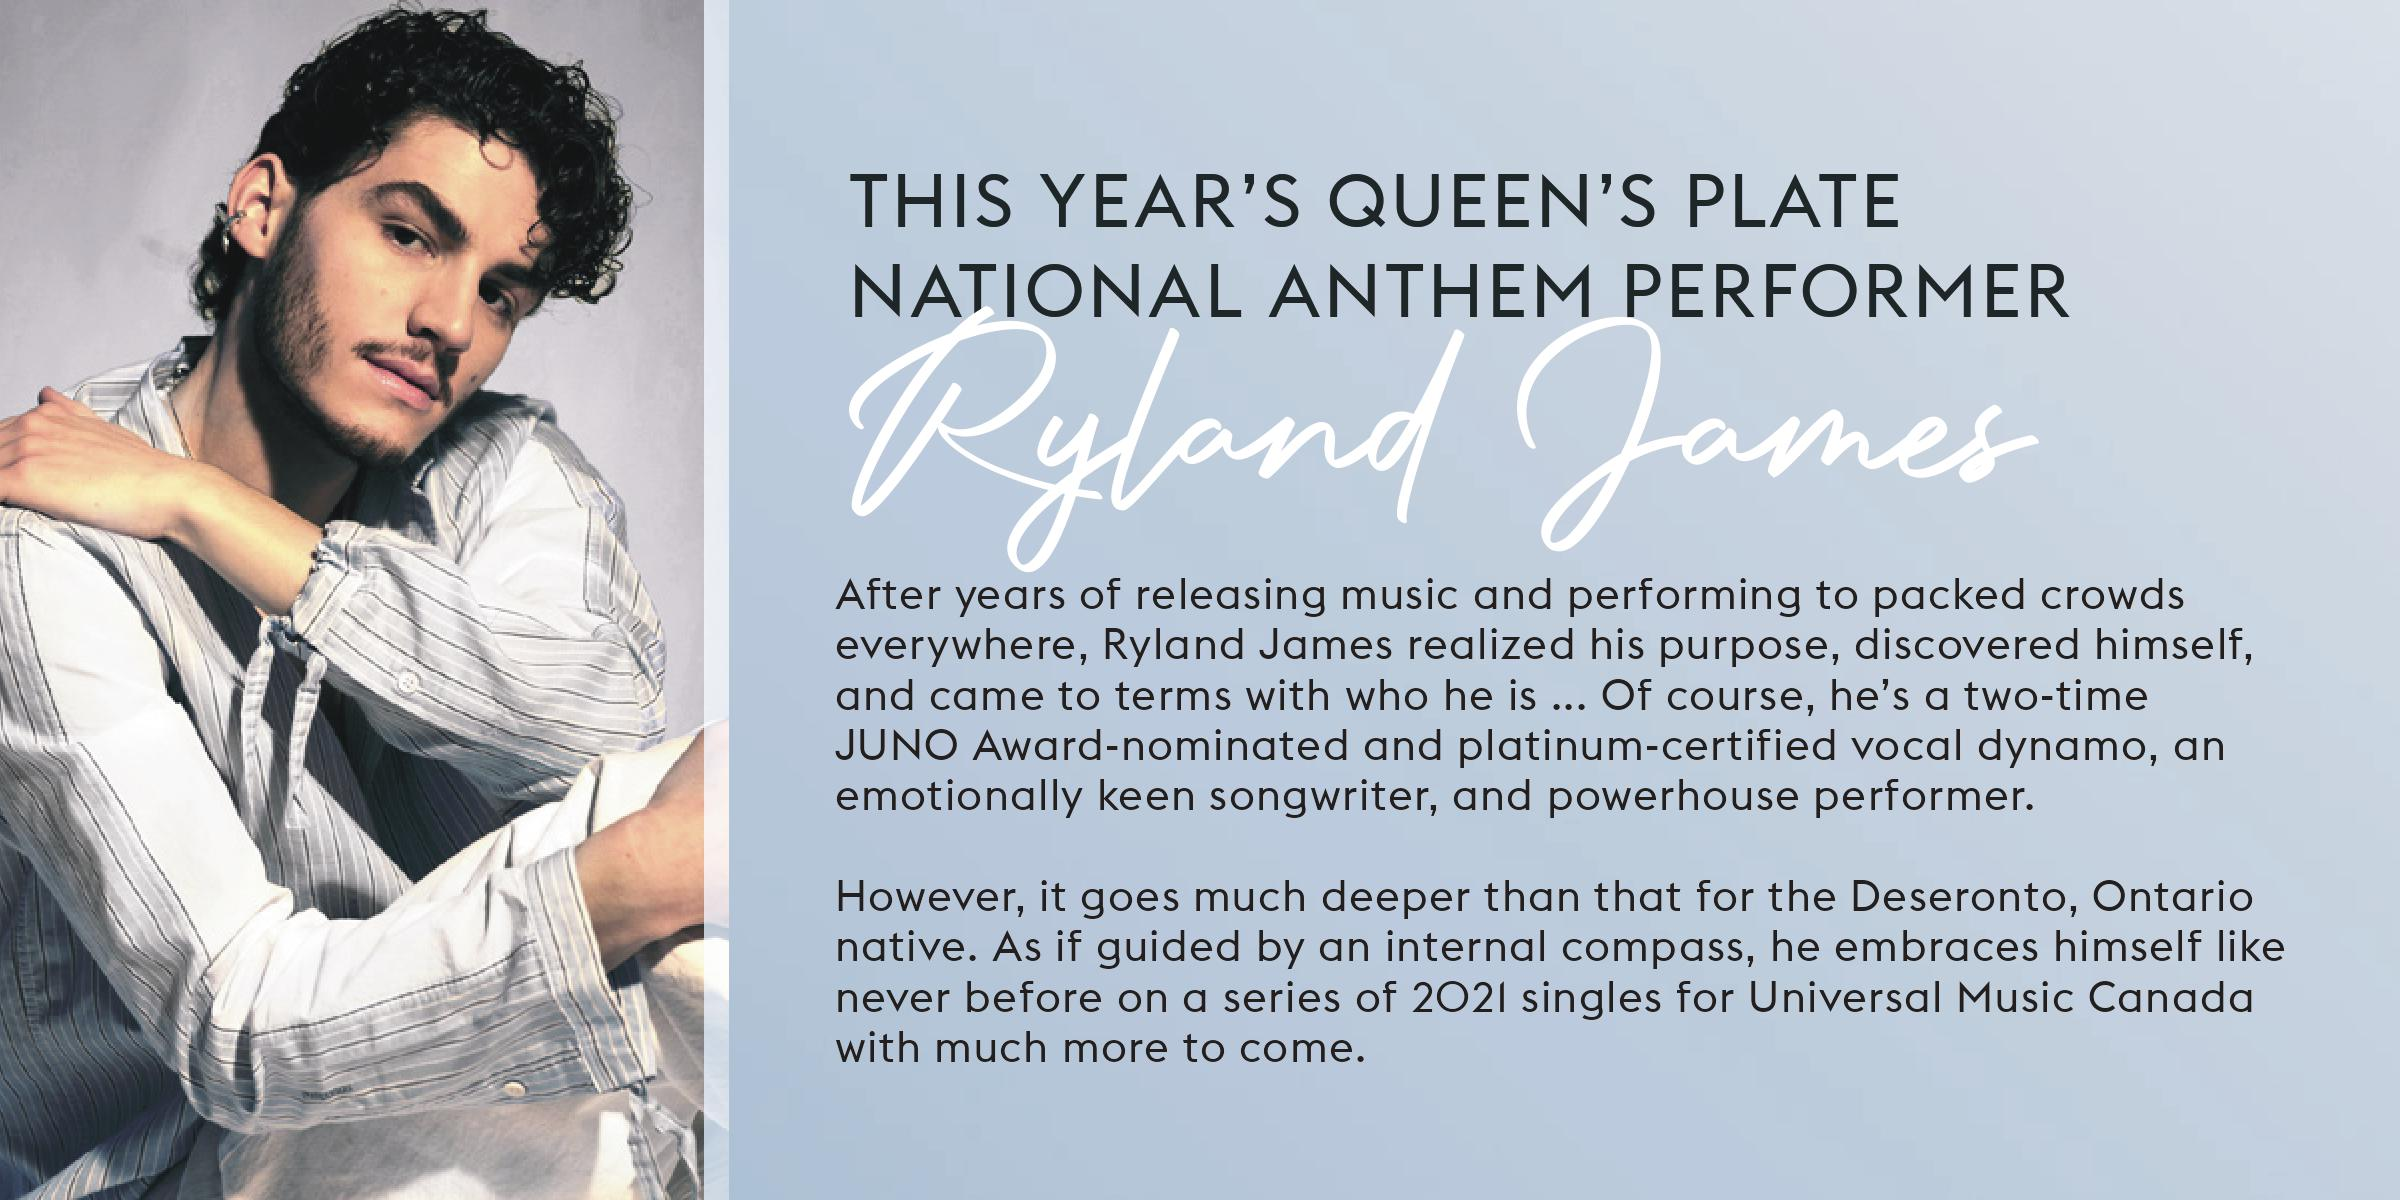 This year's Queen's Plate national anthem performer Ryland James